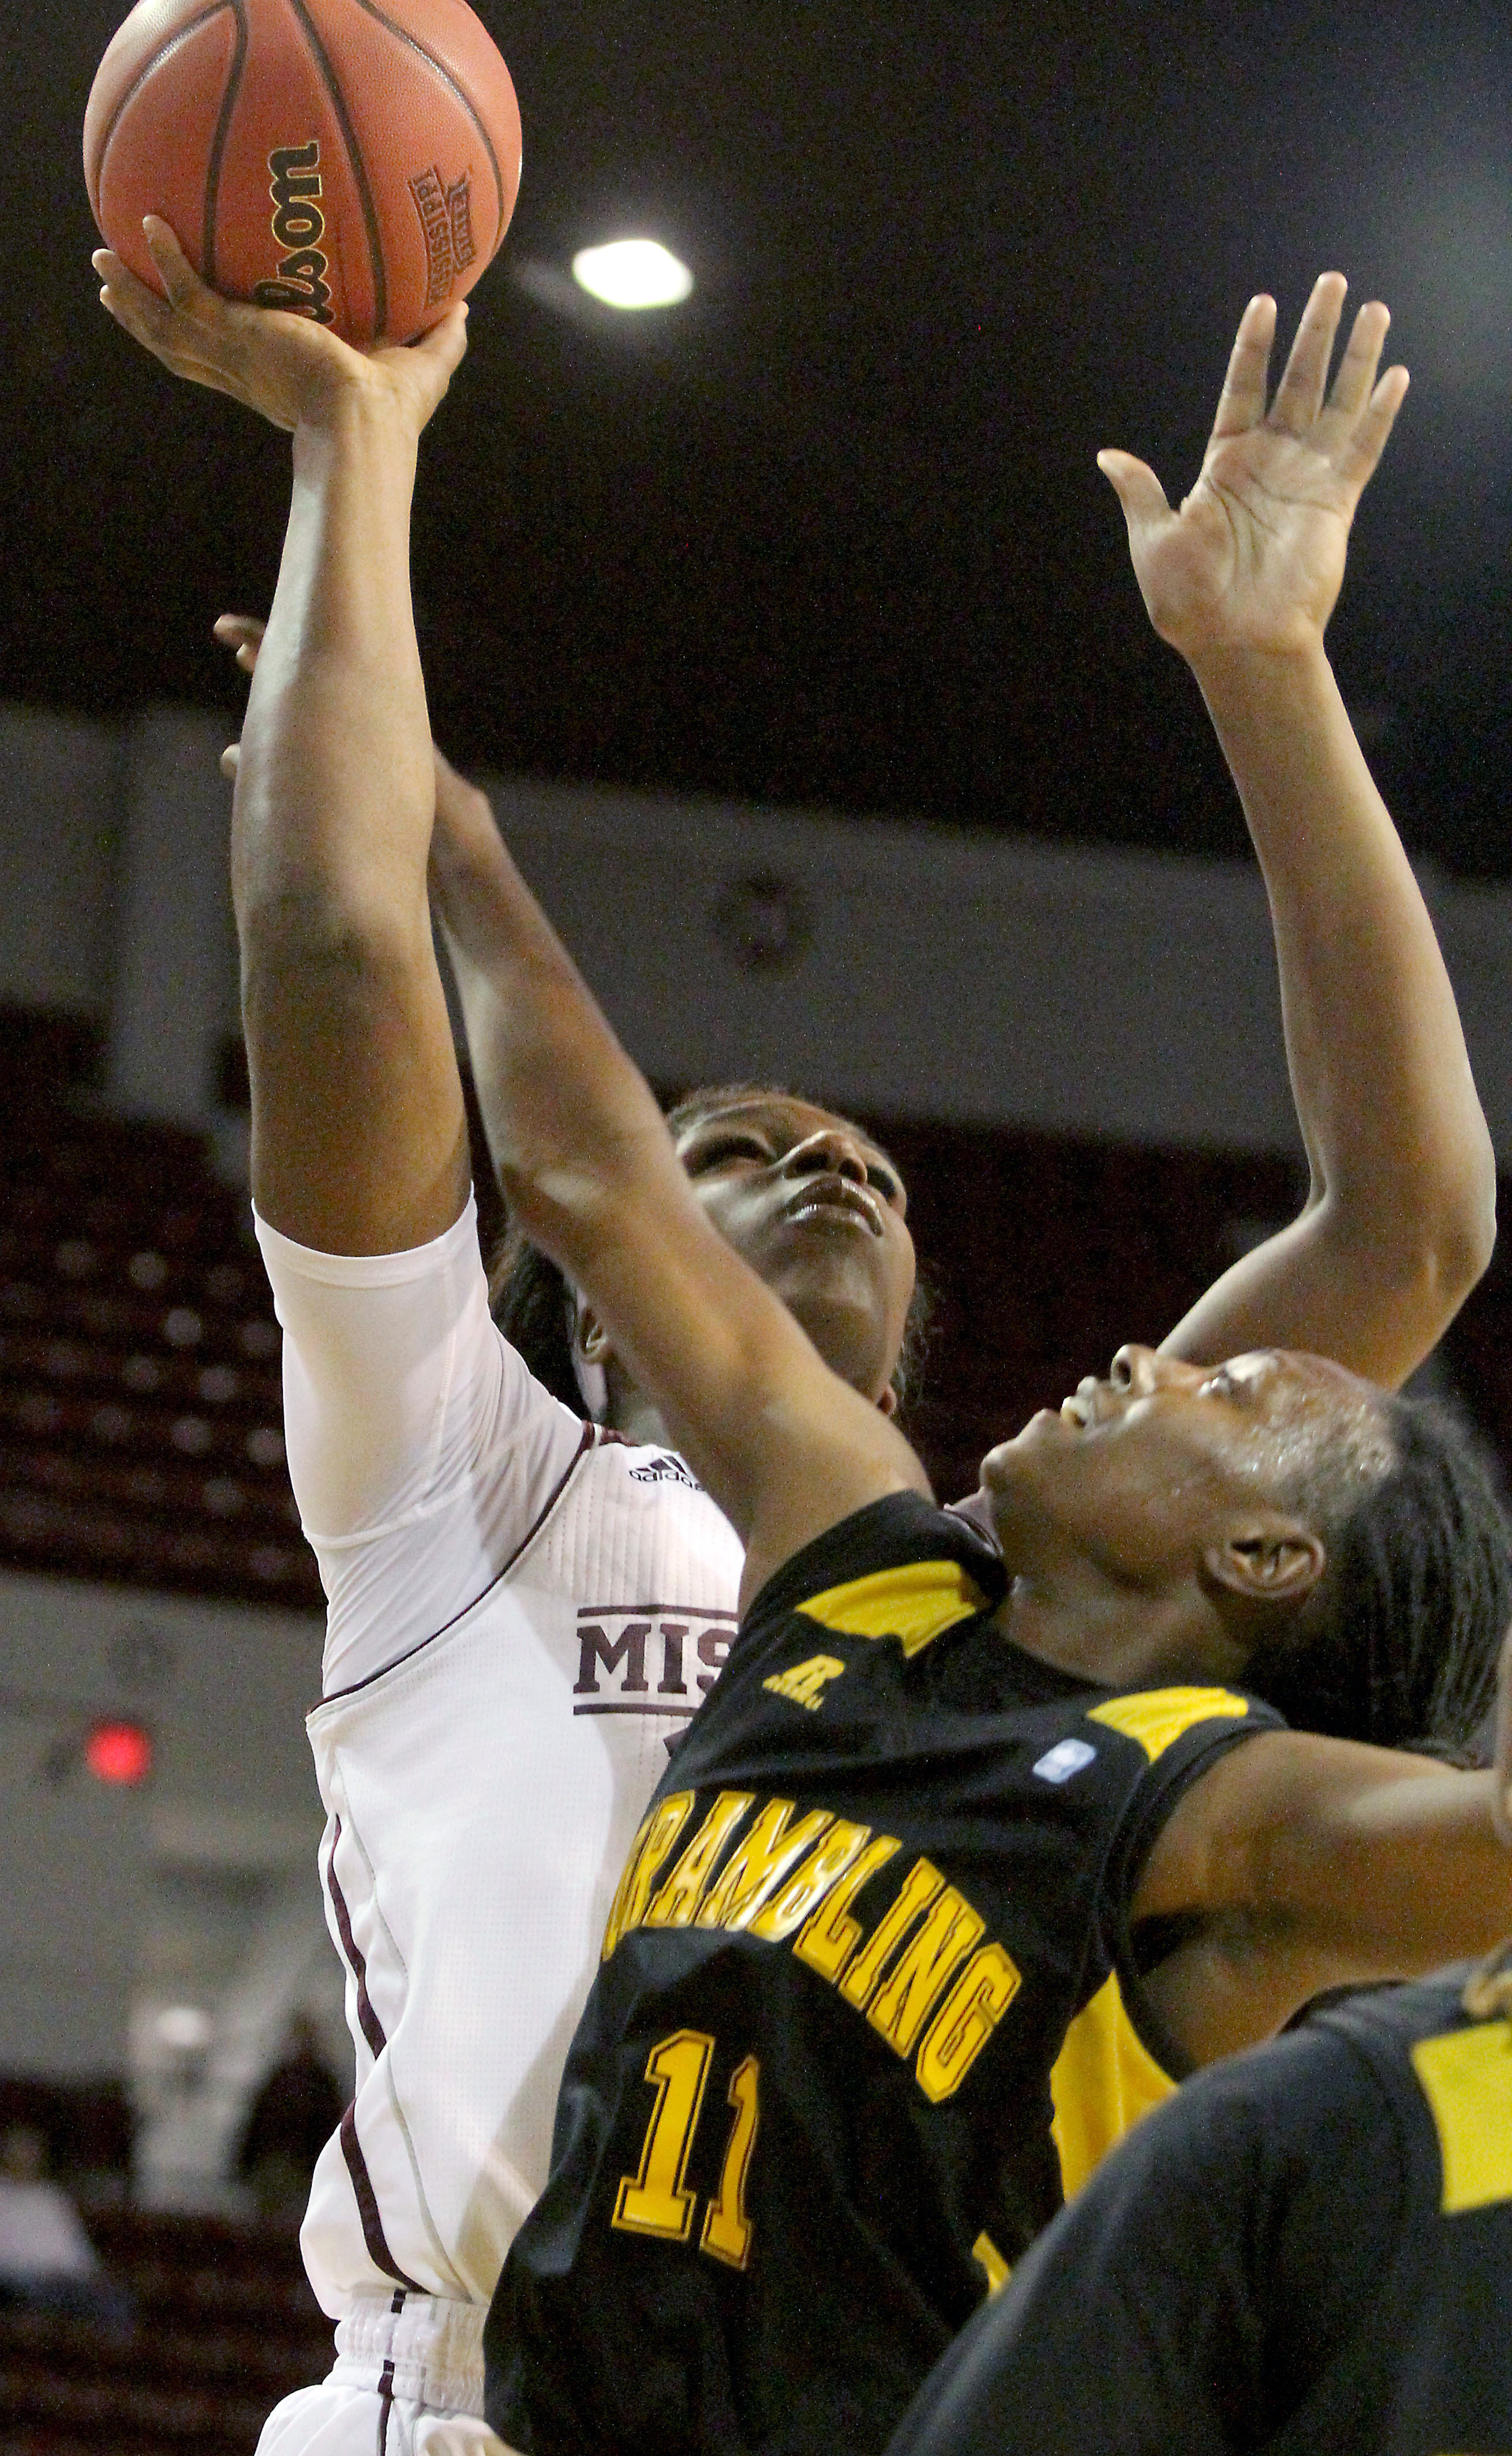 Mississippi State center Teaira McCowan (15) is fouled while shooting by Grambling State guard Chantiara Lewis (11) during the first half of an NCAA college basketball game in Starkville, Miss., Saturday, Nov. 21, 2015. (AP Photo/Jim Lytle)